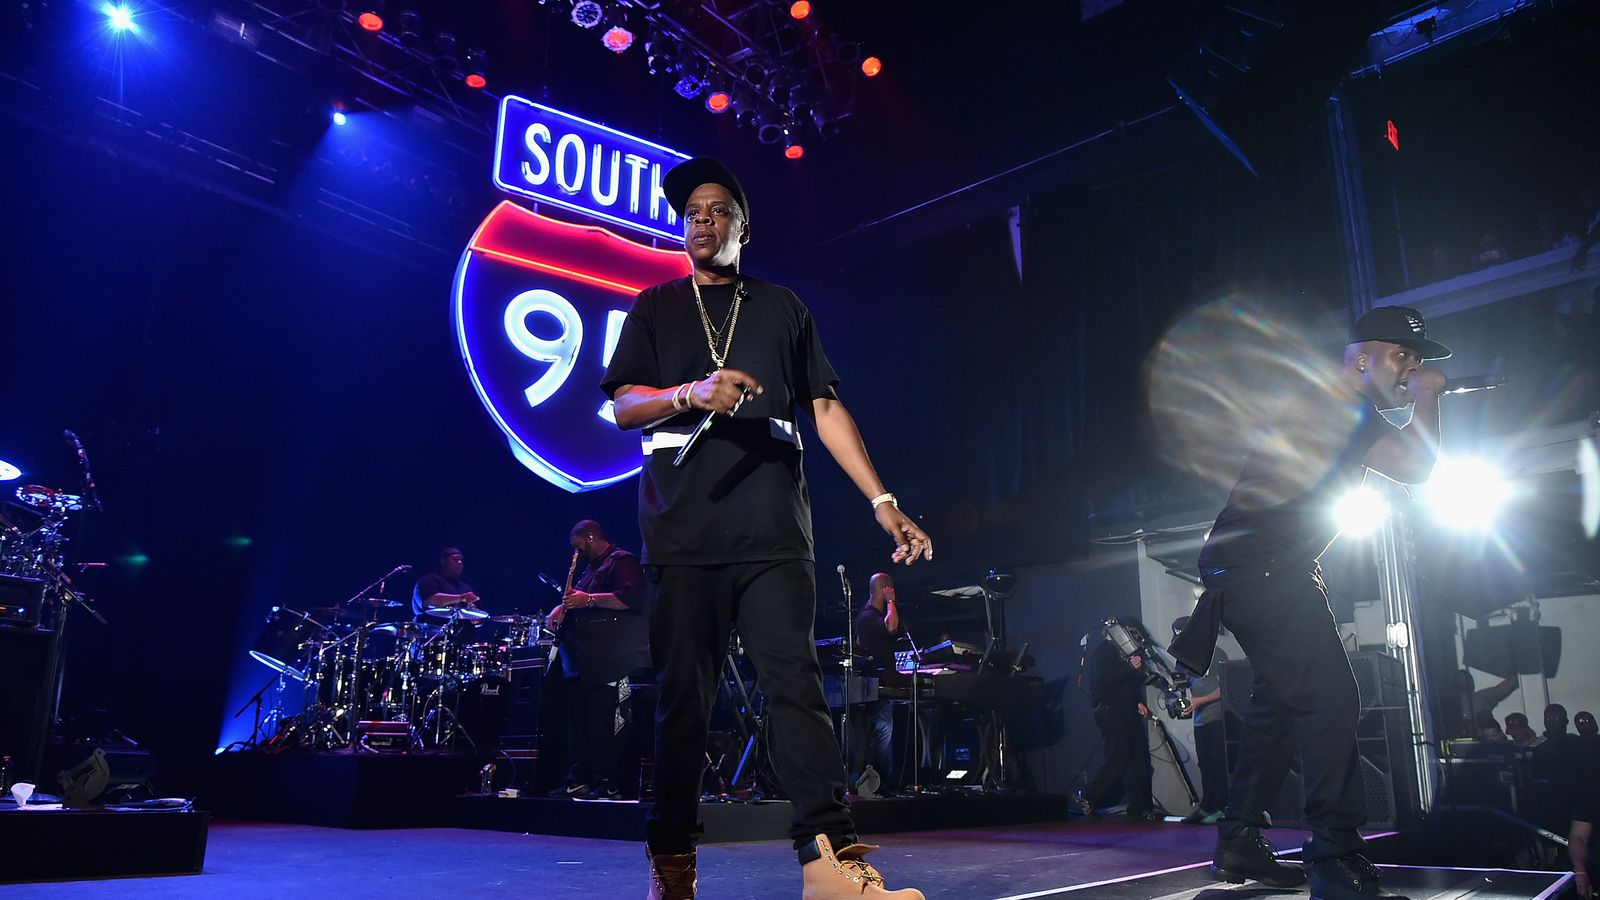 Jay Z's Tidal exclusive 4:44 has gone platinum in less than a week